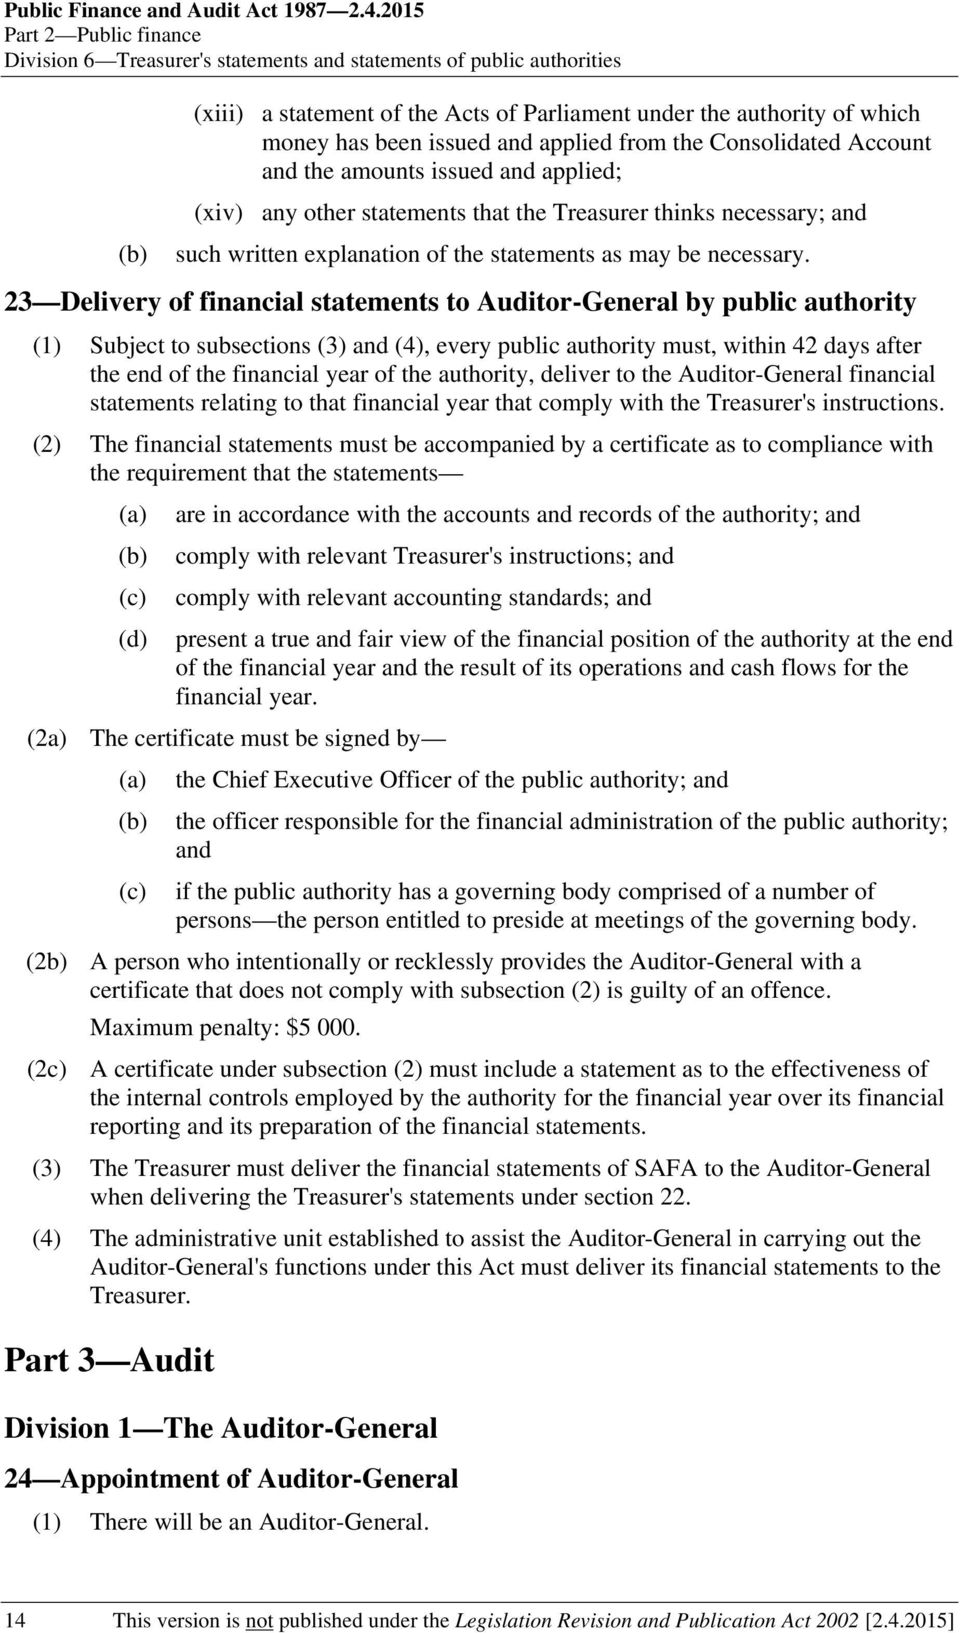 applied from the Consolidated Account and the amounts issued and applied; (xiv) any other statements that the Treasurer thinks necessary; and such written explanation of the statements as may be